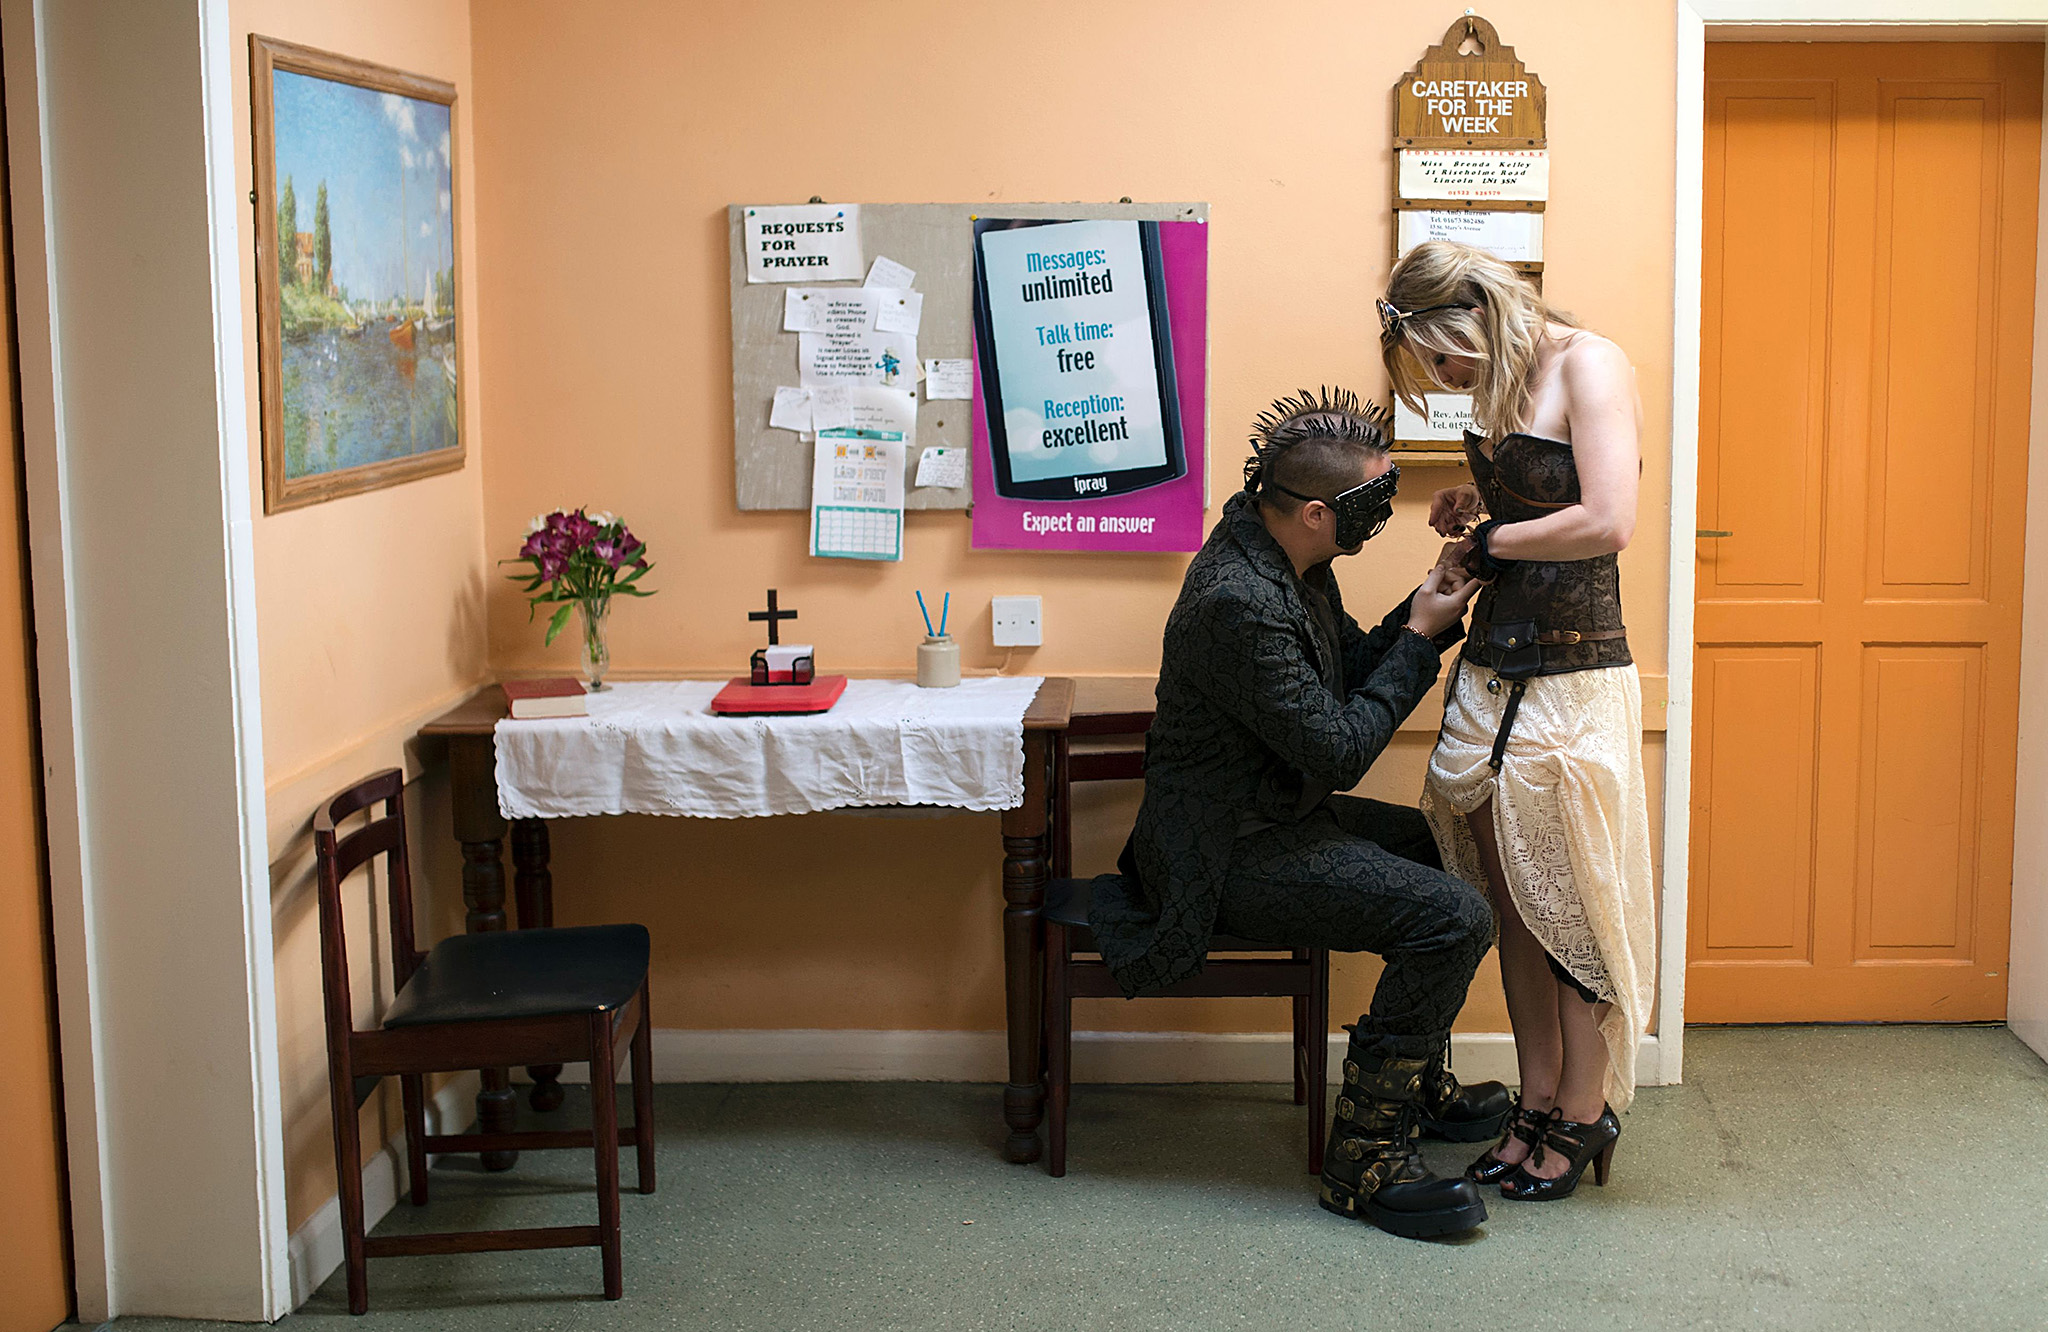 Steampunk enthusiasts fix their attire in a church hall on the first day of 'The Asylum Steampunk Festival' in Lincoln, northern England on August 26, 2016.